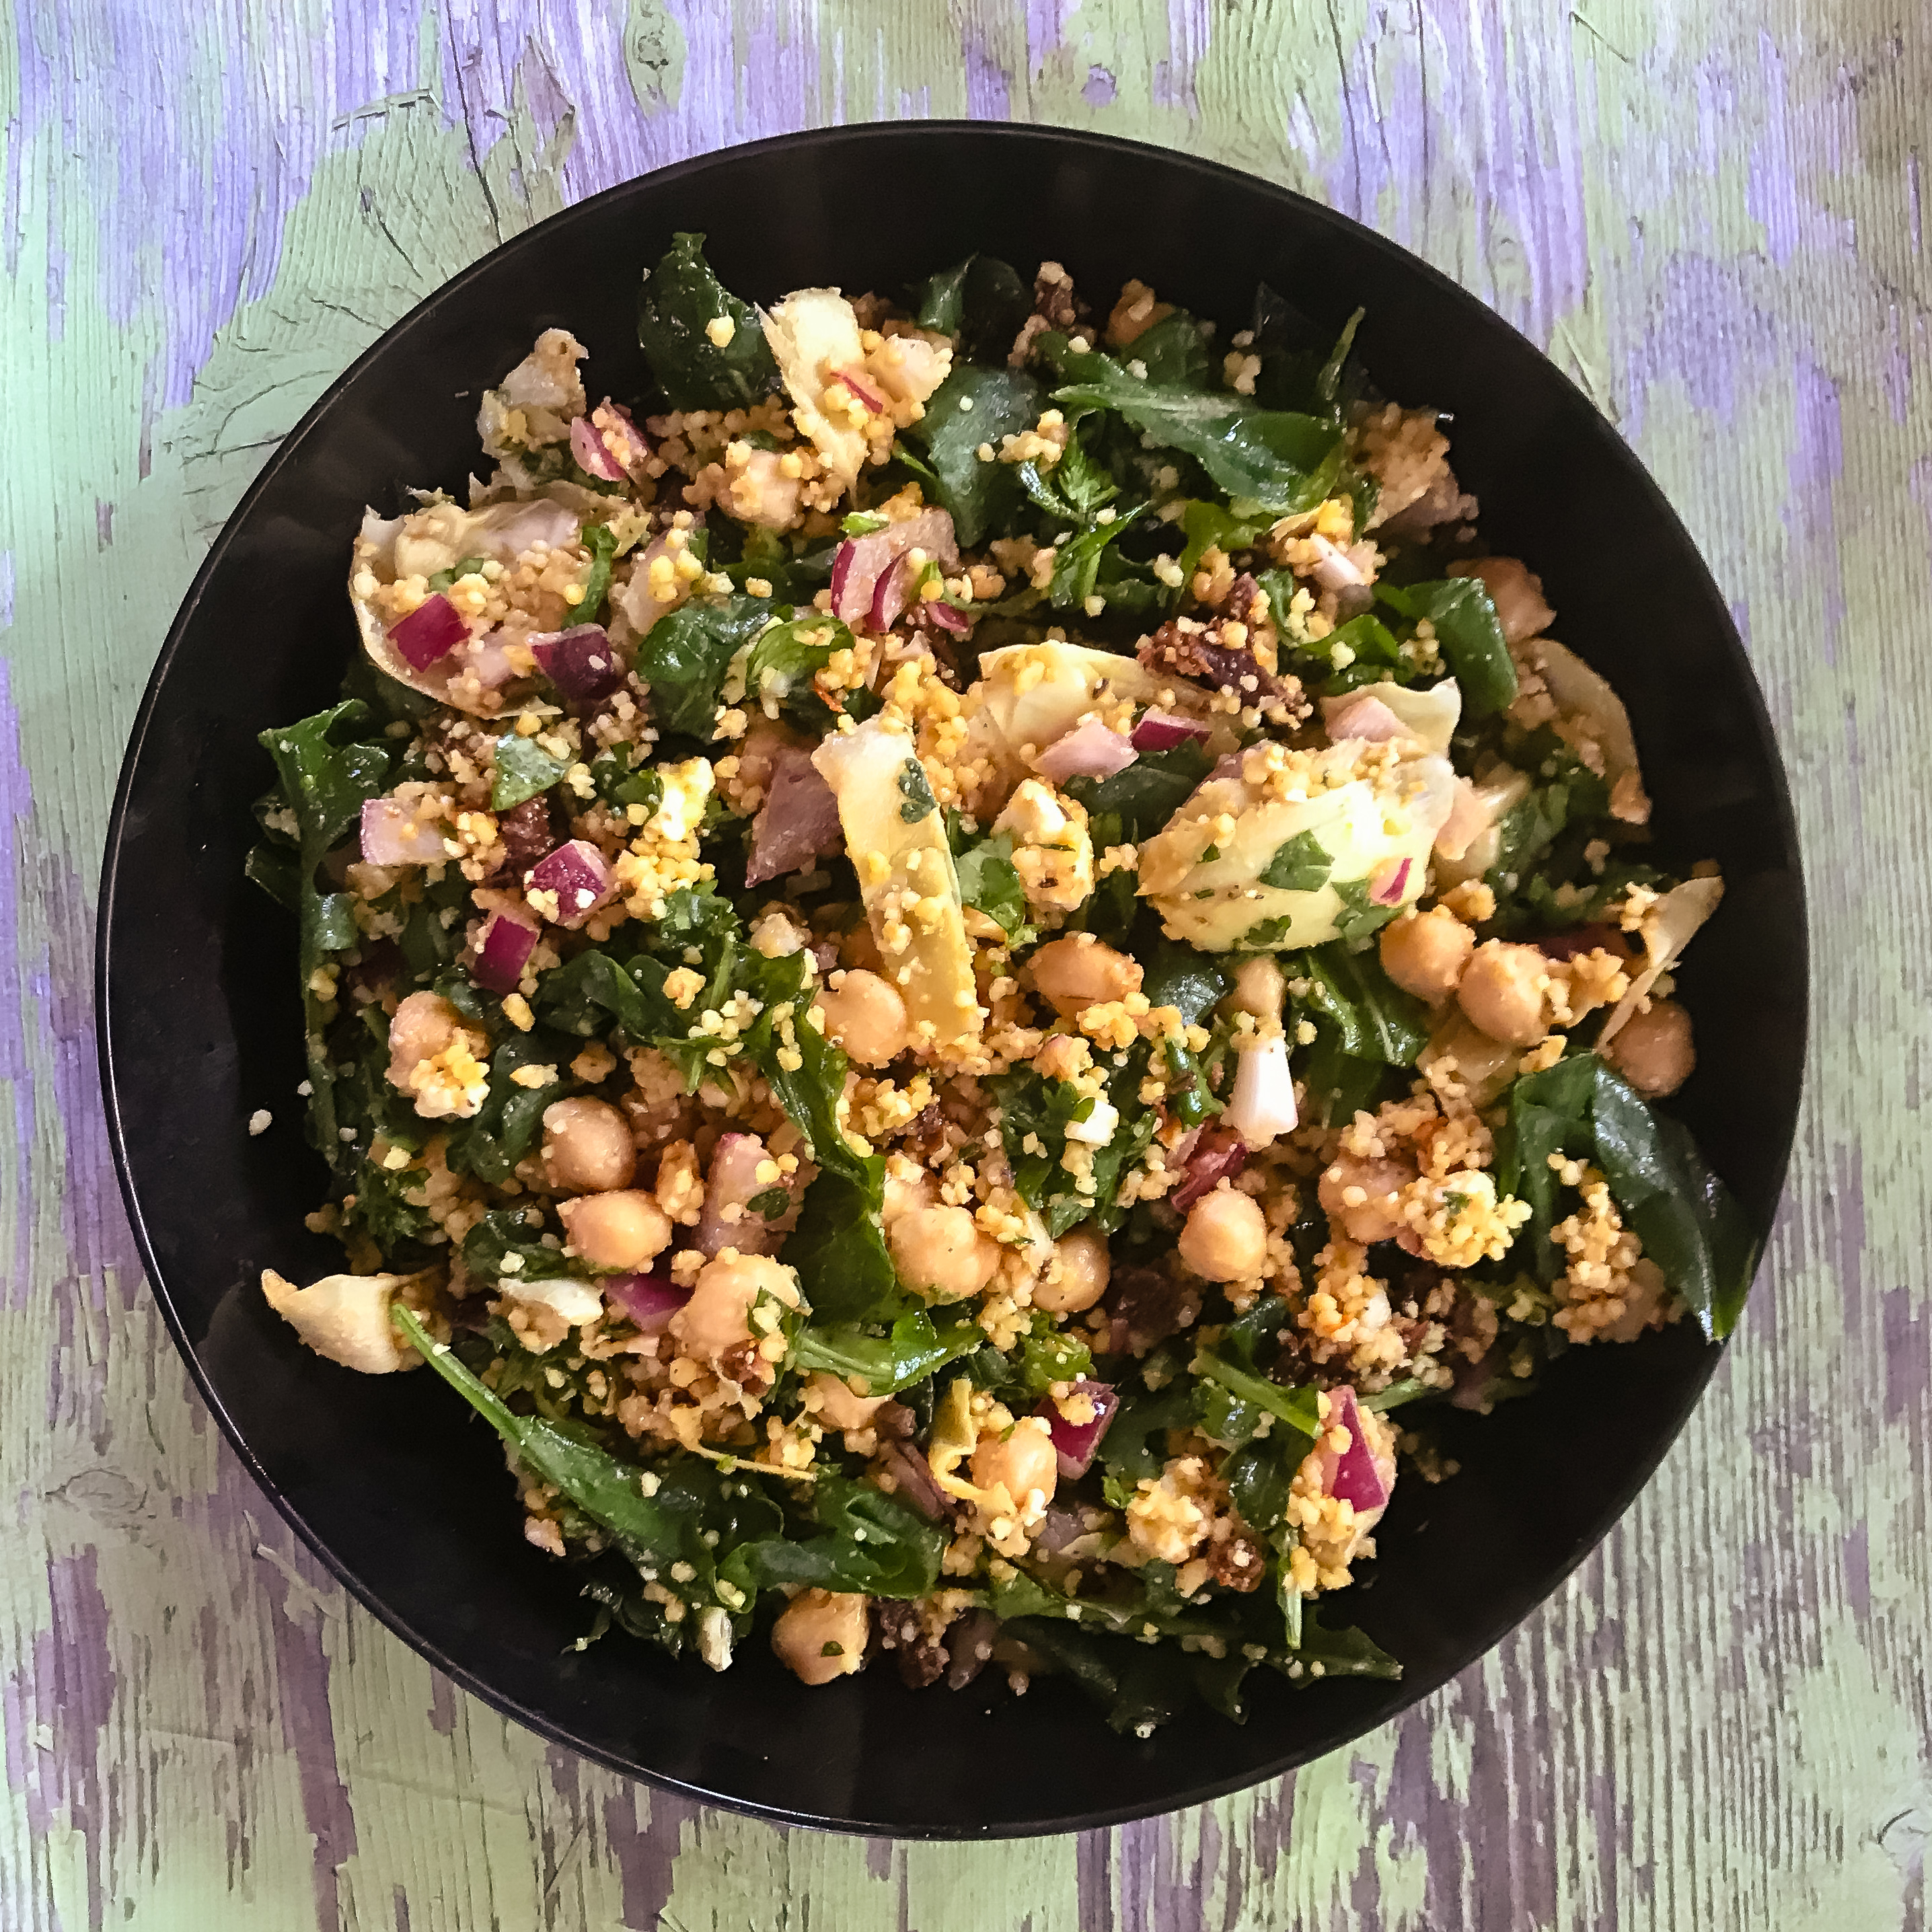 Couscous Sun-Dried Tomato Salad with Chickpeas and Feta